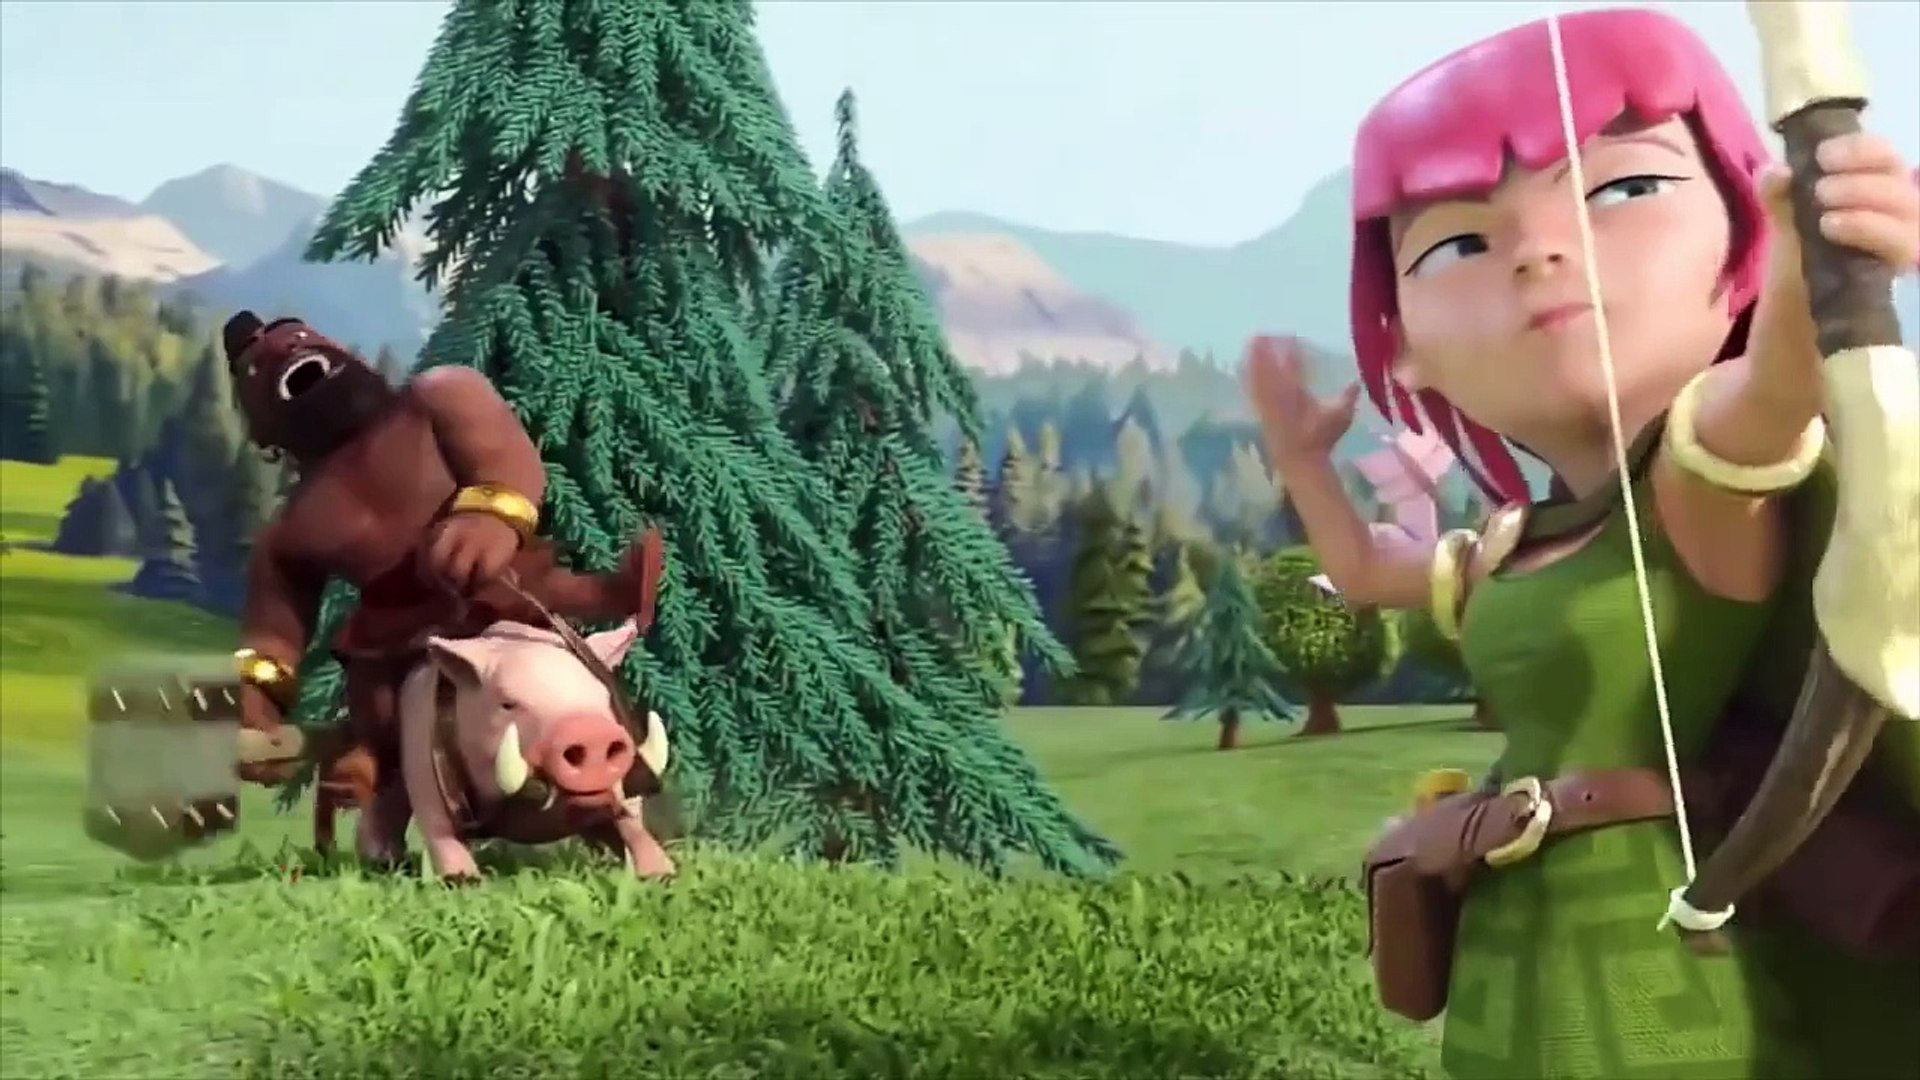 Clash of Clans Movie - Full Animated Clash of Clans Movie Animation! (CoC Movie!)